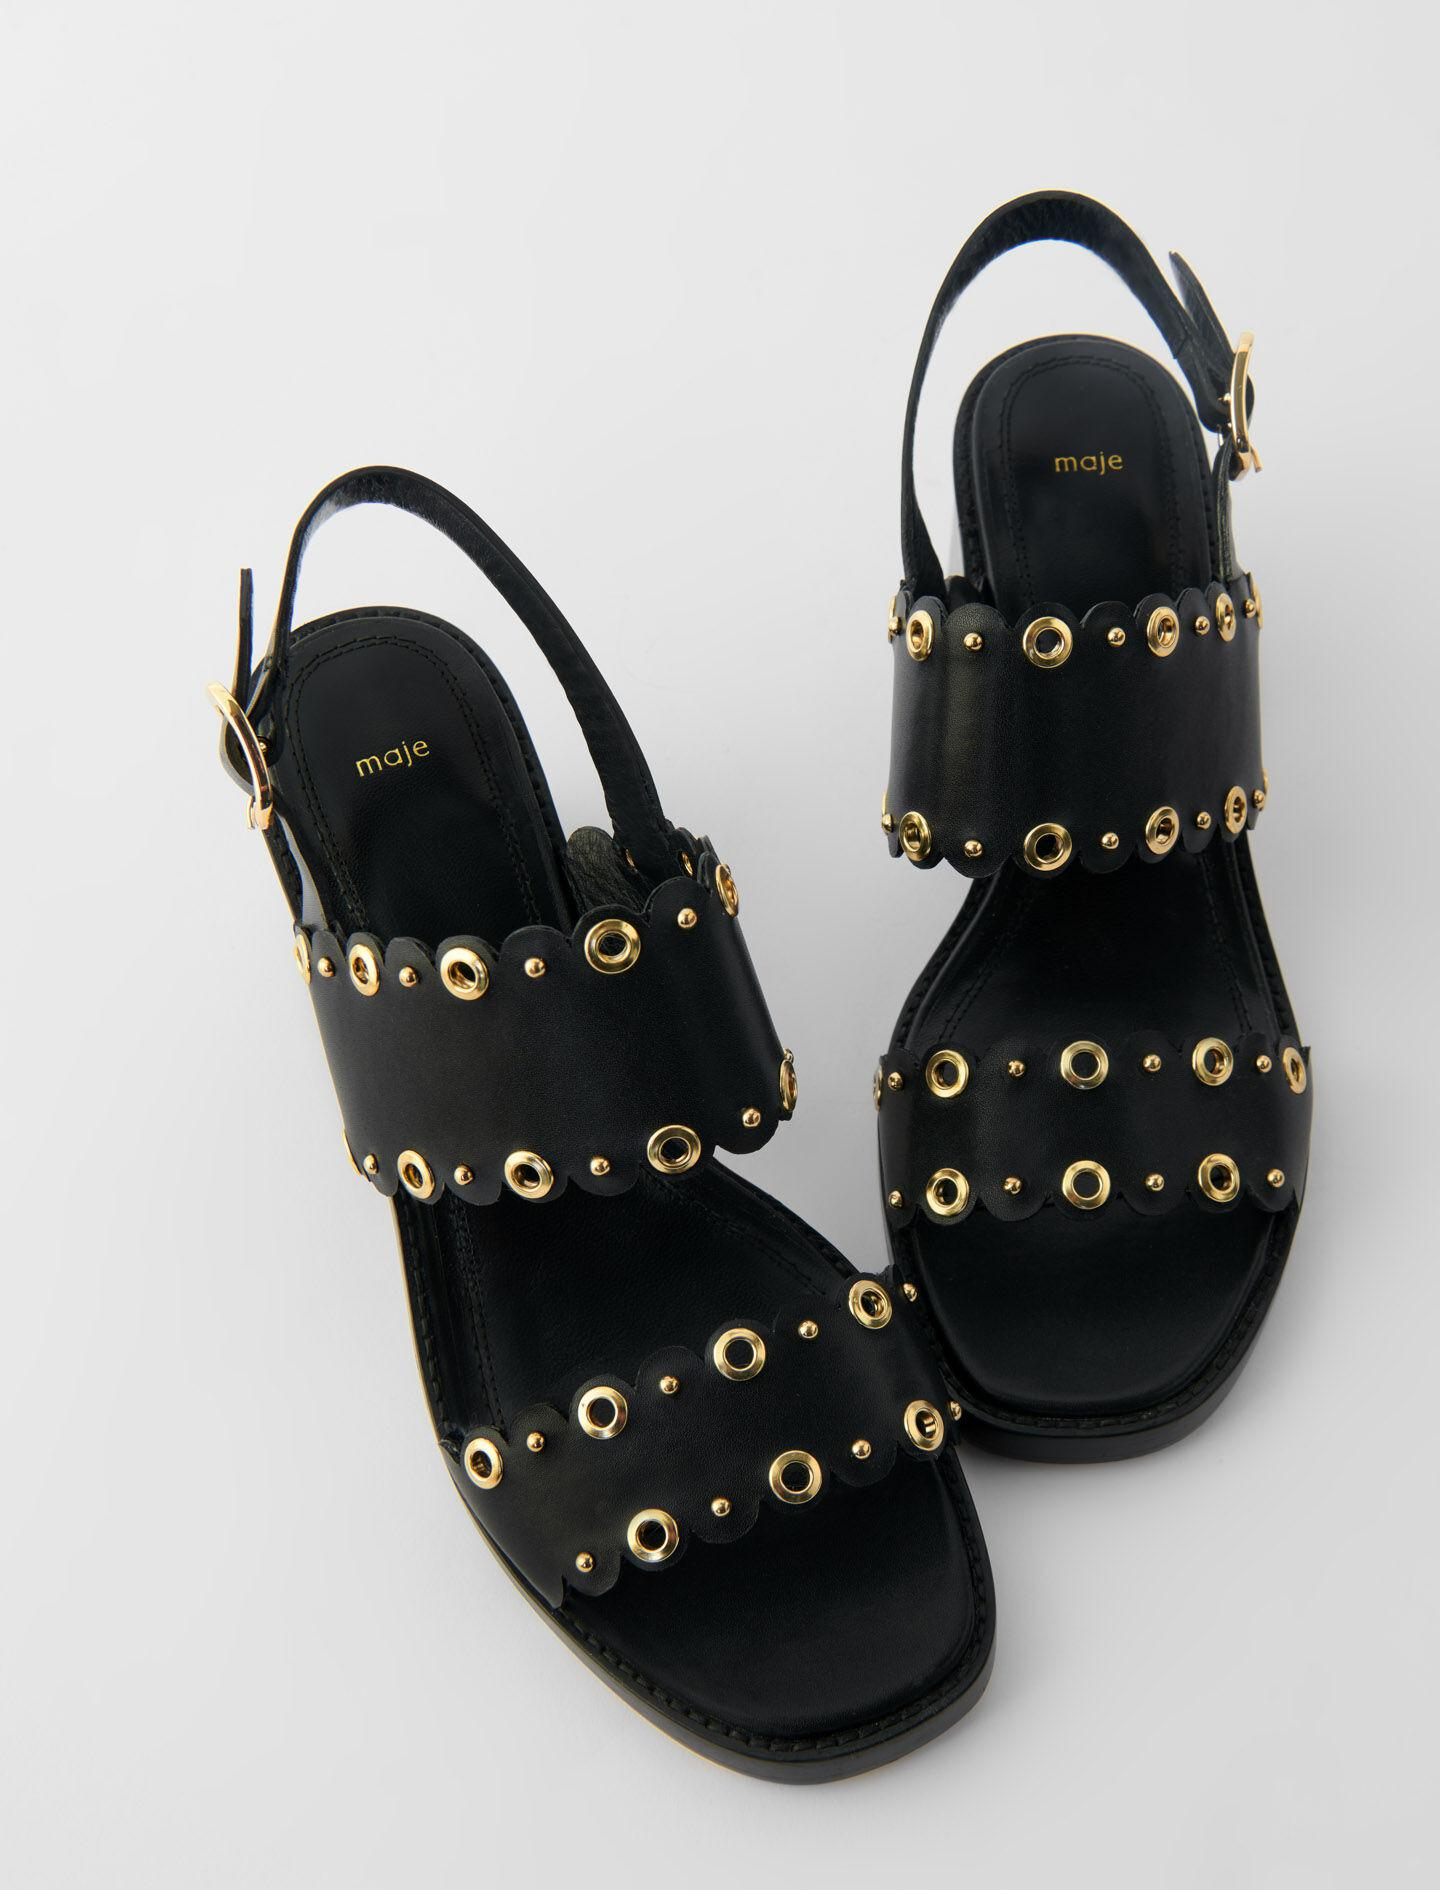 HIGH-HEELED LEATHER SANDALS WITH EYELETS 2